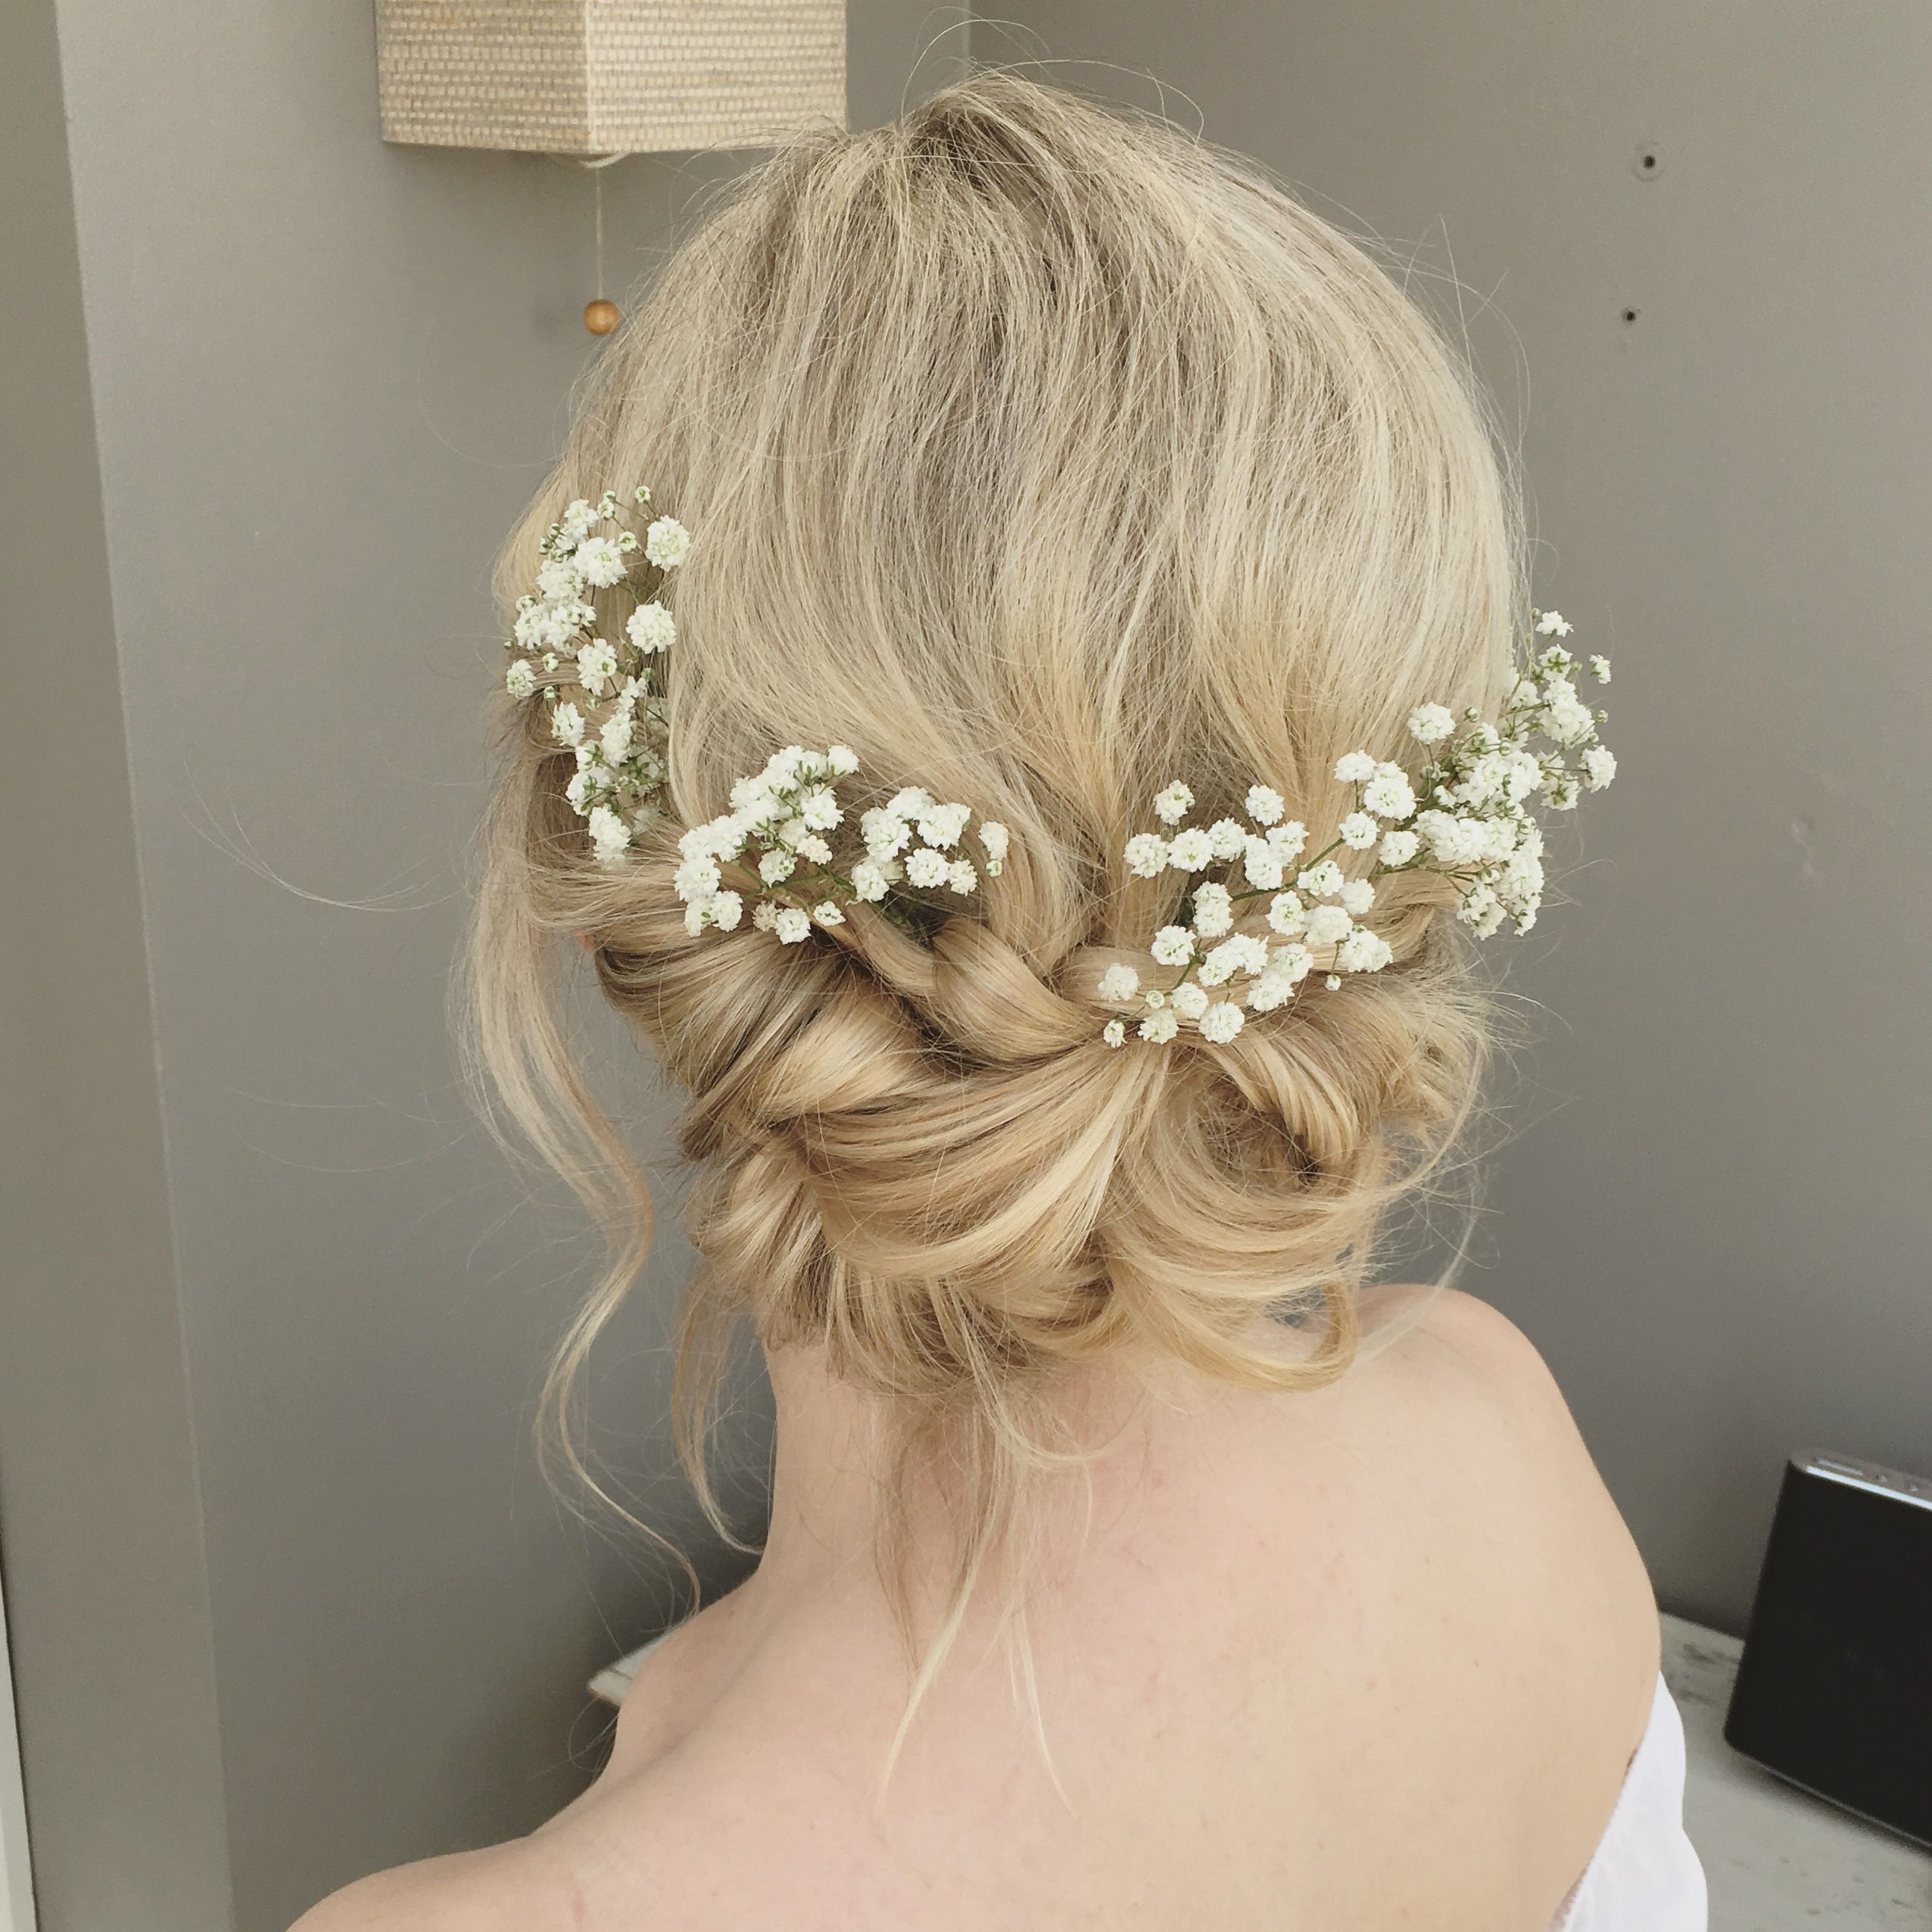 Boho Messy And Relaxed Wedding Hair With Gypsophila And Plaits Woven For Well Known Messy Woven Updo Hairstyles For Mother Of The Bride (View 14 of 20)